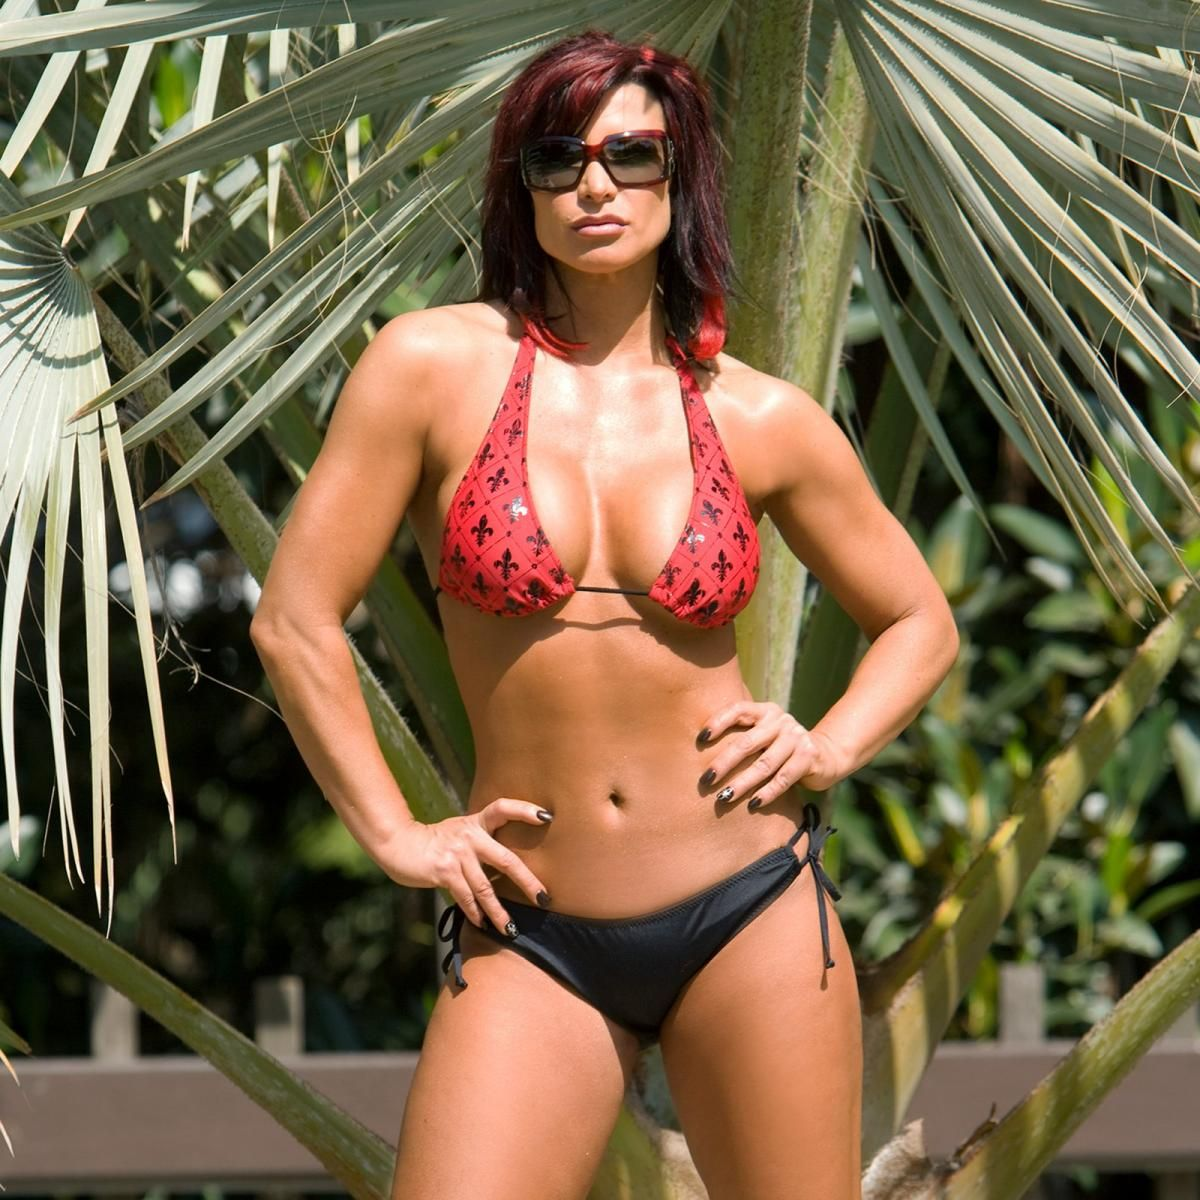 Don't mess with these photos of Victoria   Wrestling divas, Female wrestlers, Victoria